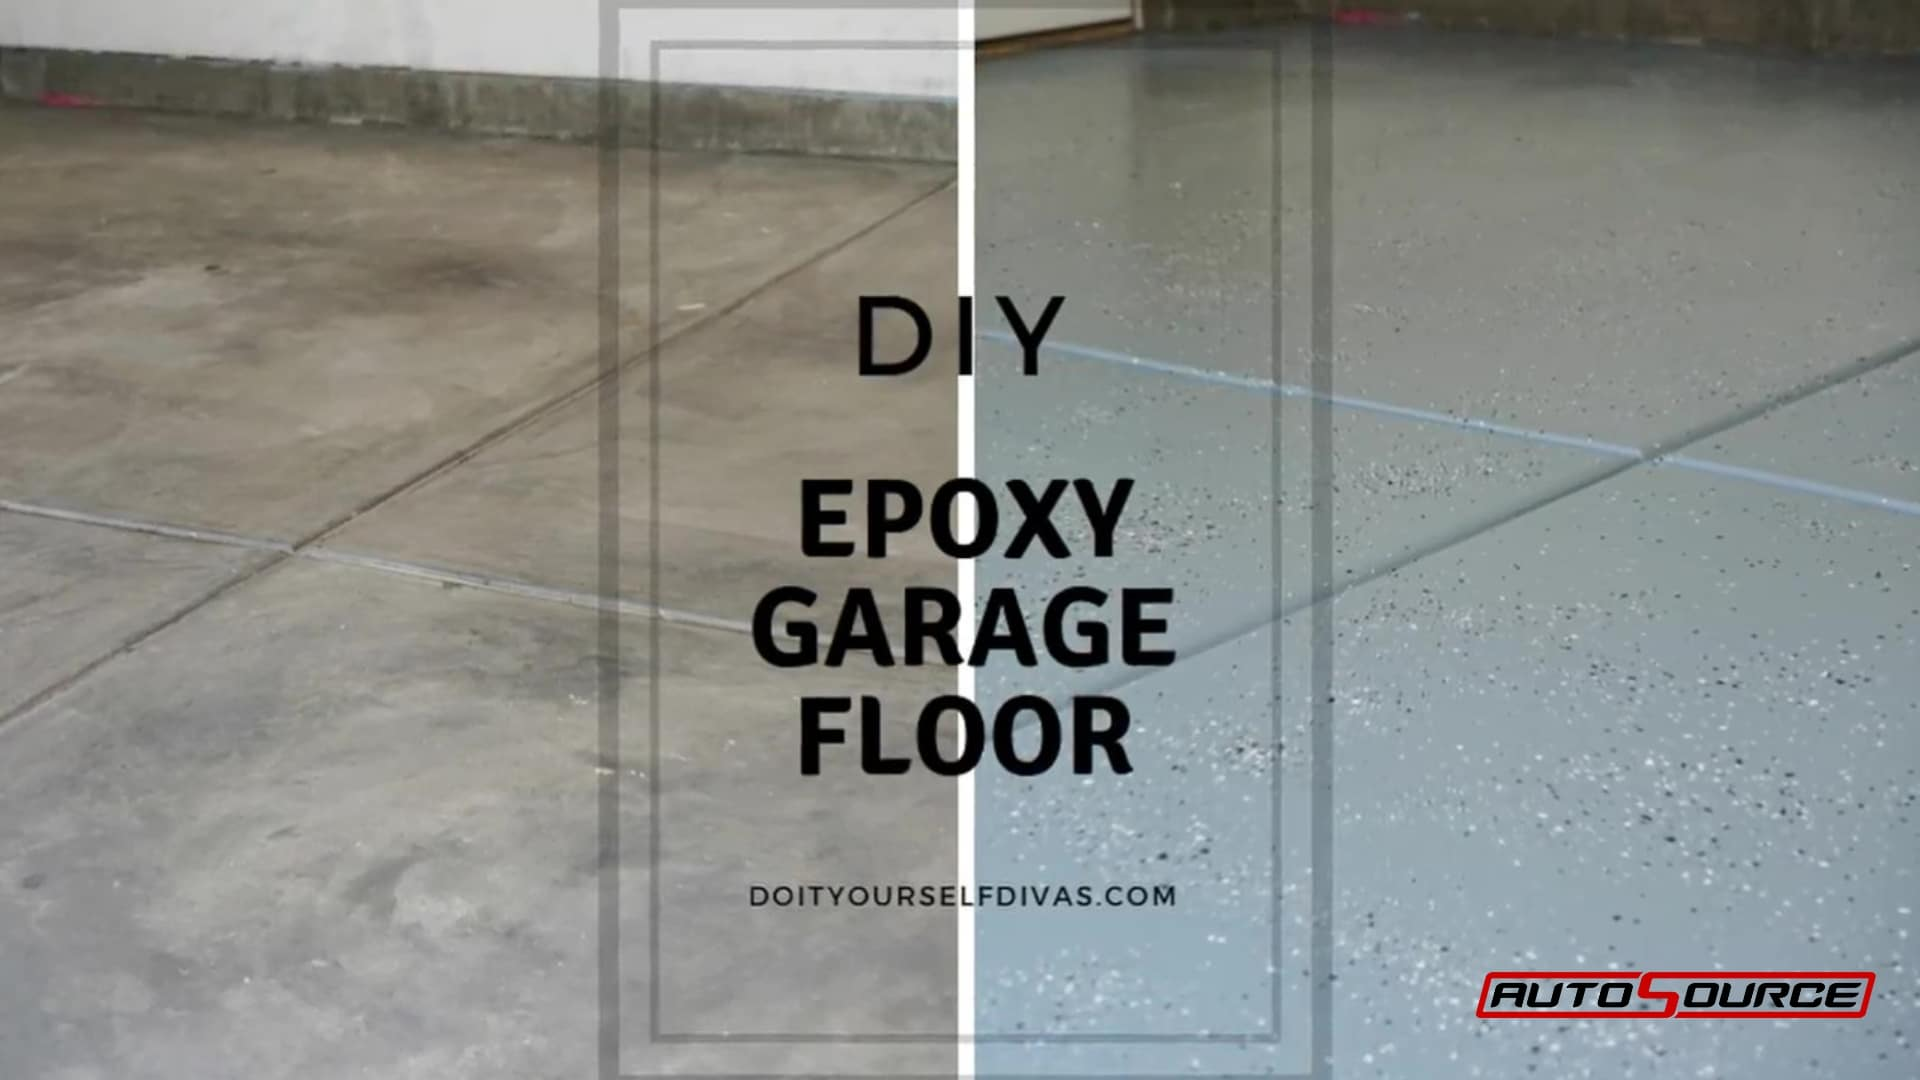 Garage Epoxy Tucson Diy Epoxy Garage Floor Diy Divas Autosource